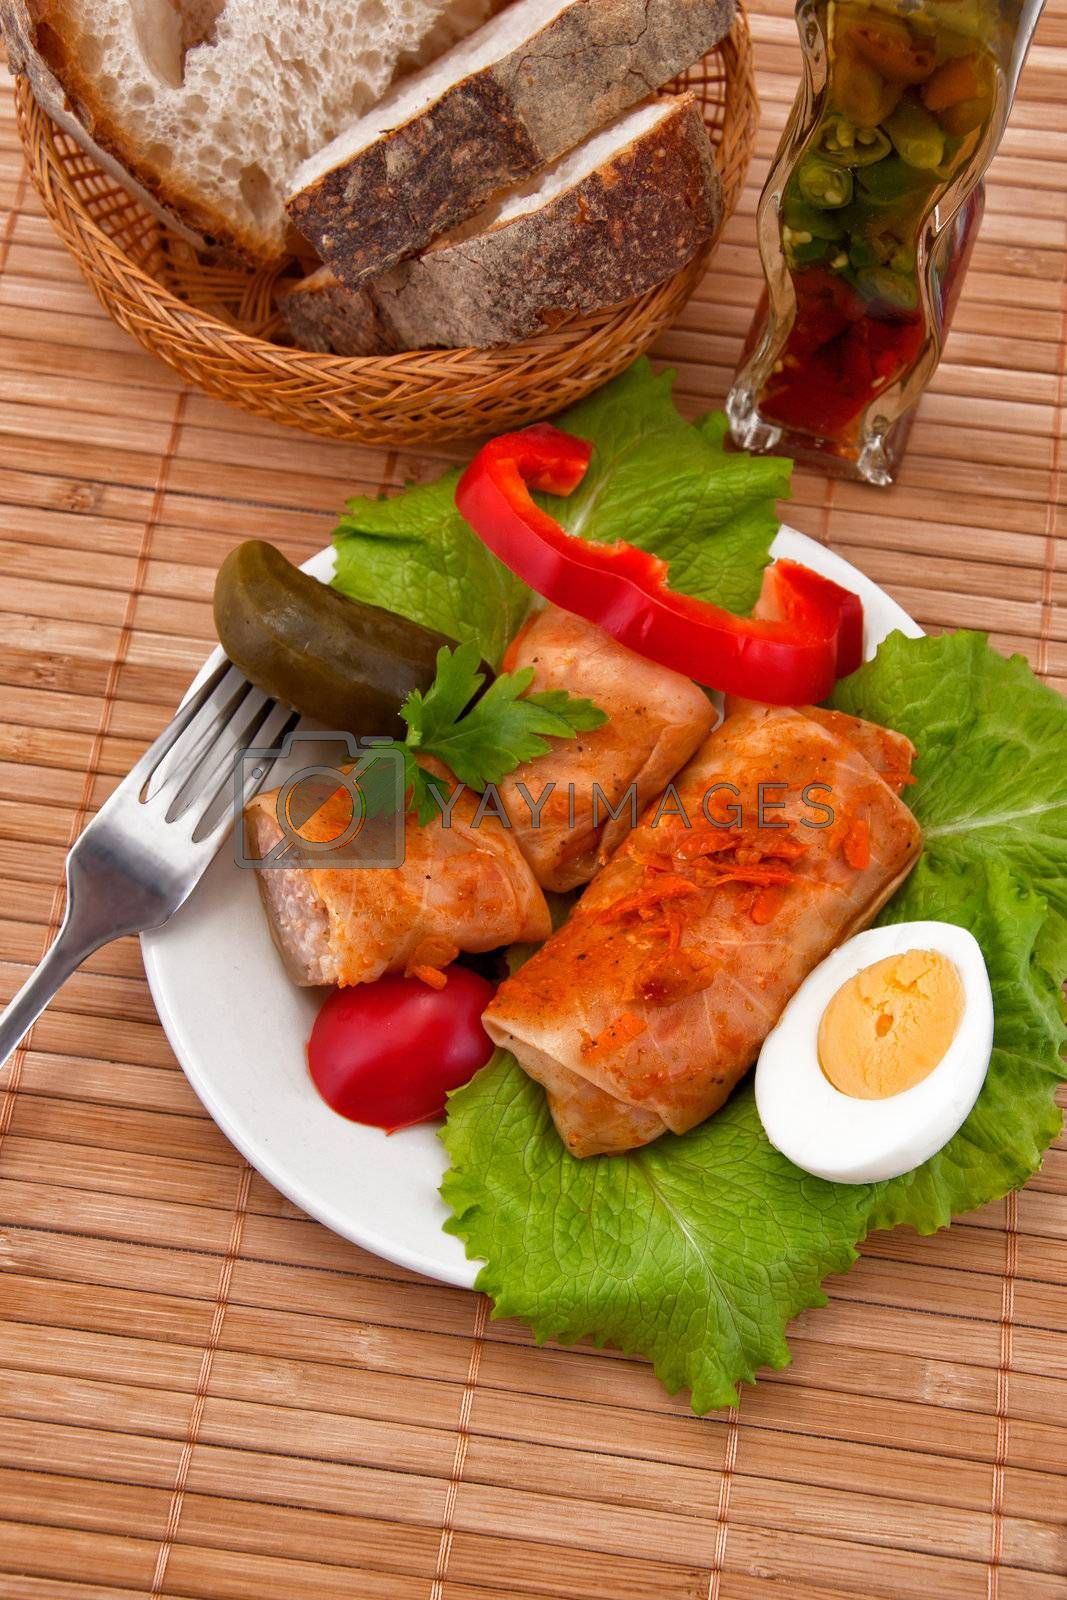 Stuffed cabbage on plate, fork and bread